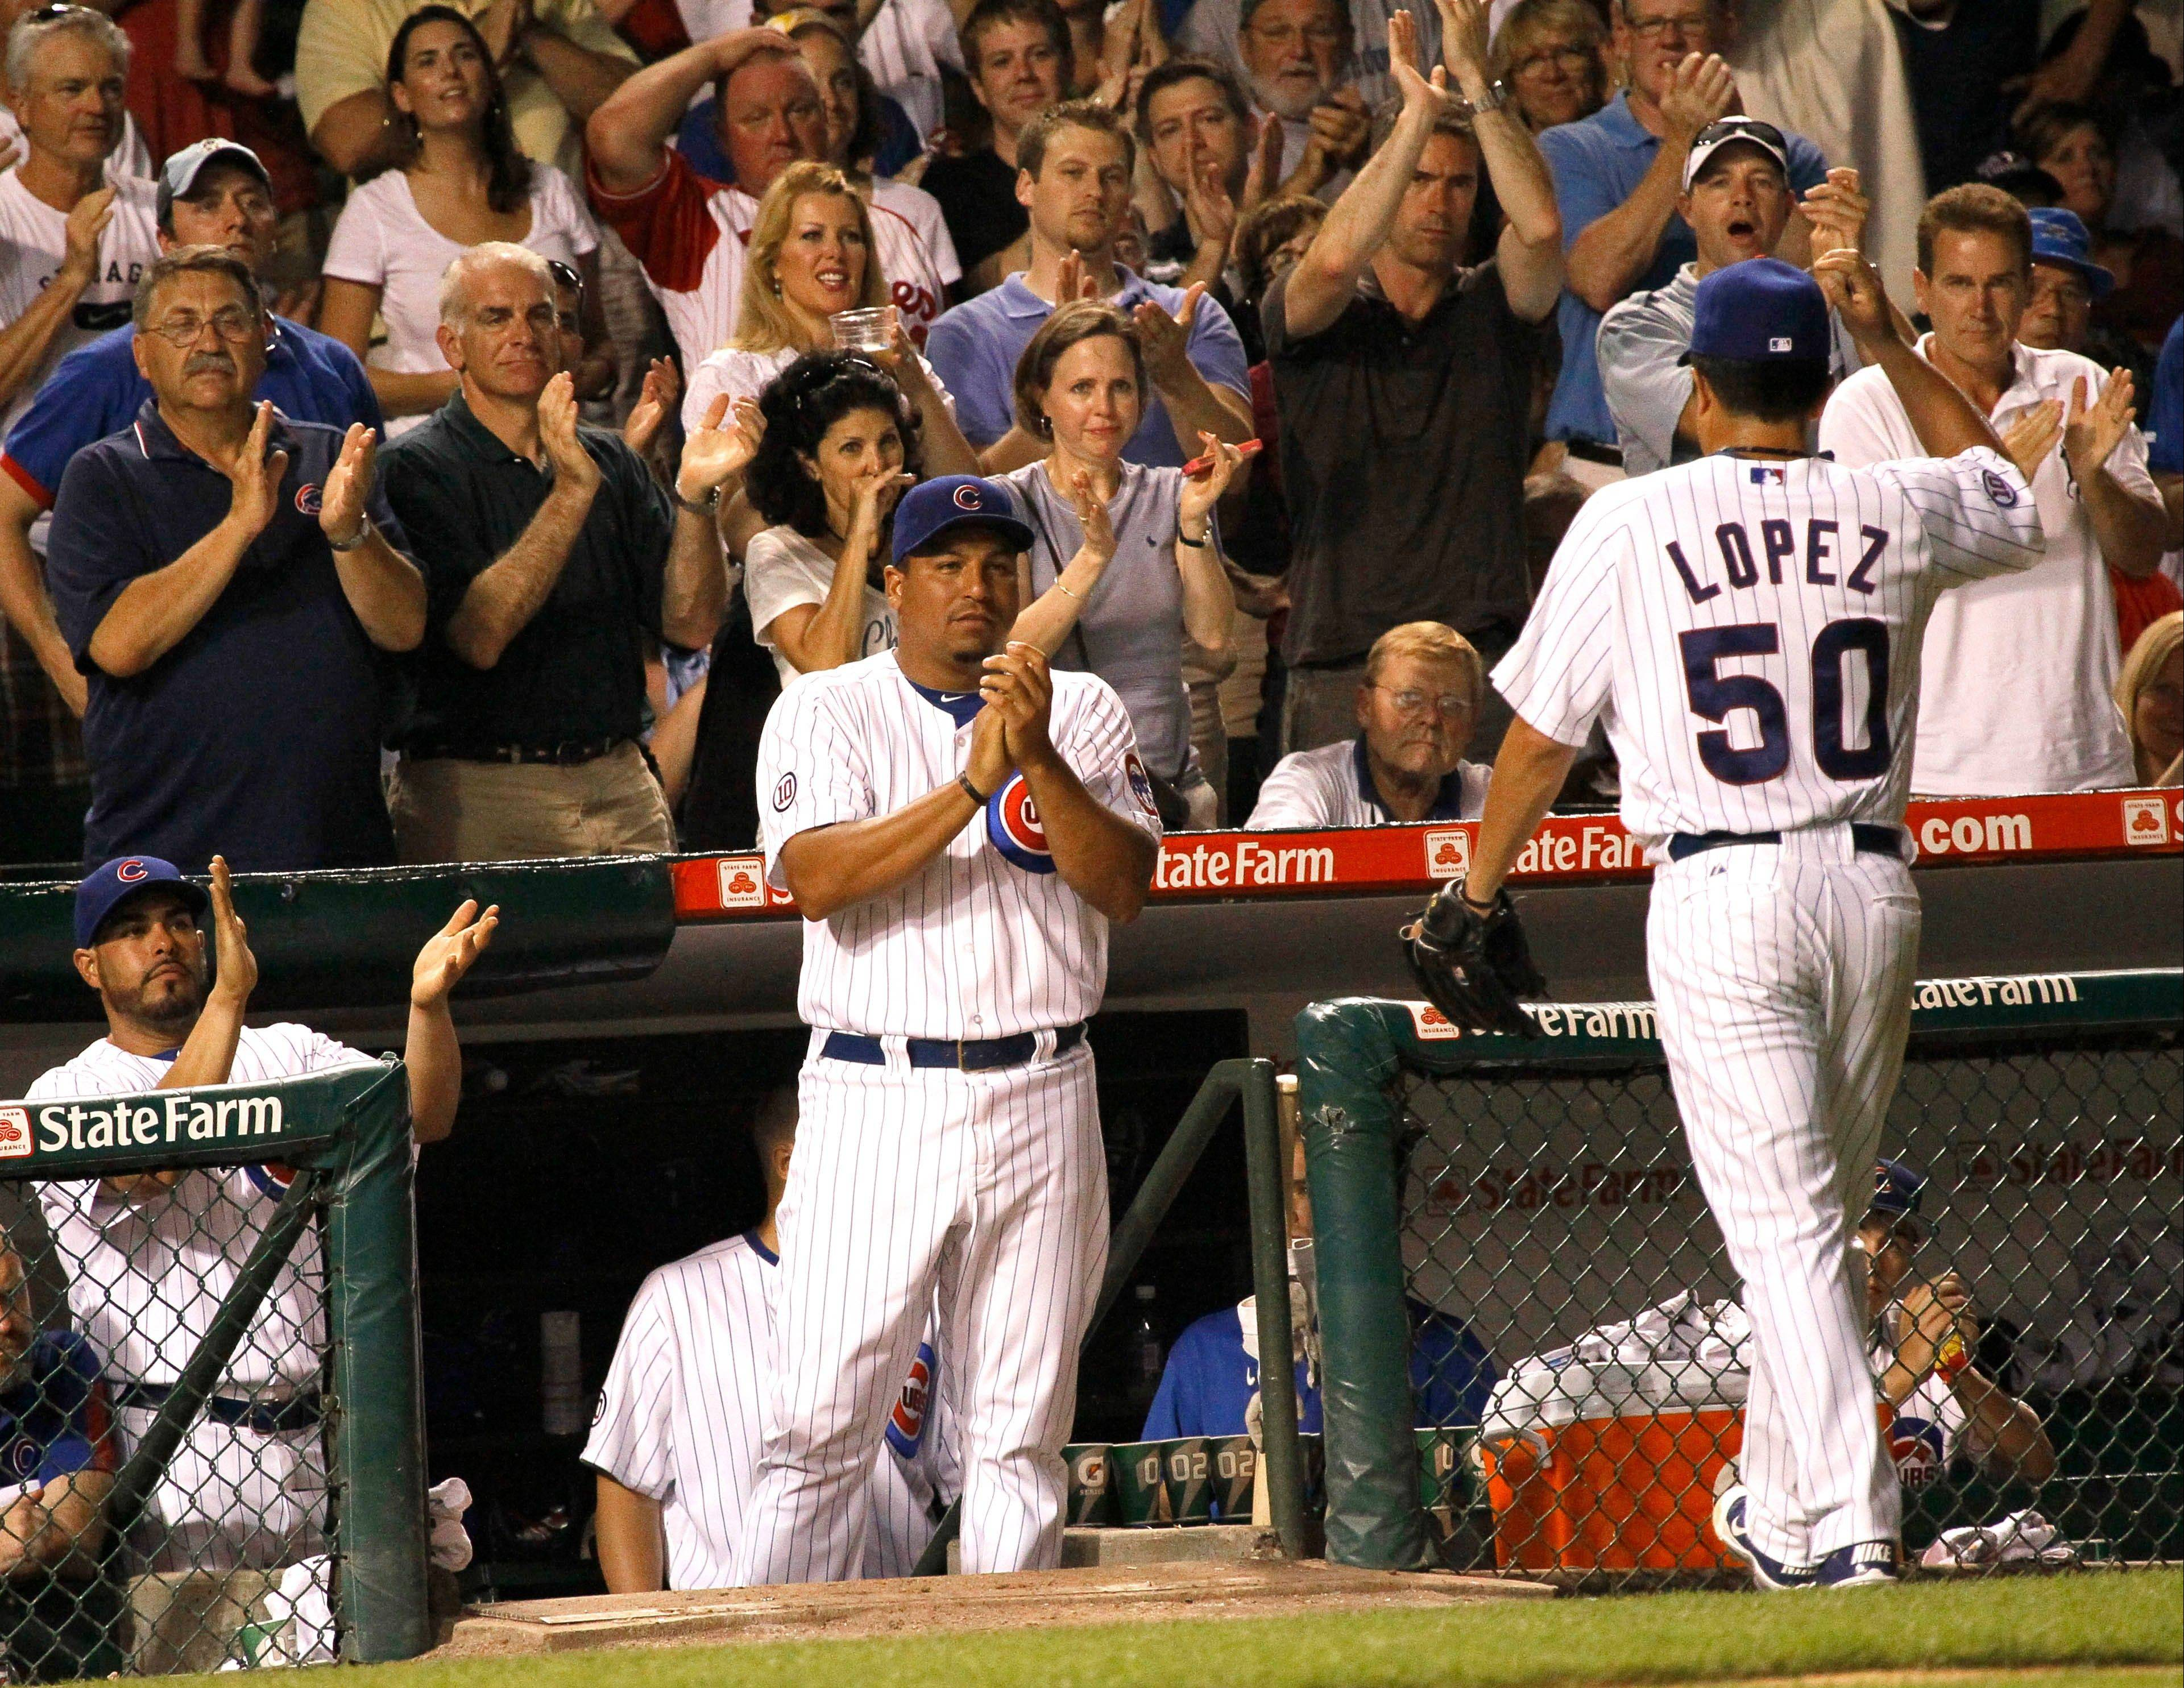 Cubs pitcher Carlos Zambrano, center, leads the applause as starting pitcher Rodrigo Lopez exits the game during the seventh inning Monday against the Phillies at Wrigley Field. Lopez pitched 6⅔ innings, allowing 1 run on 5 hits.